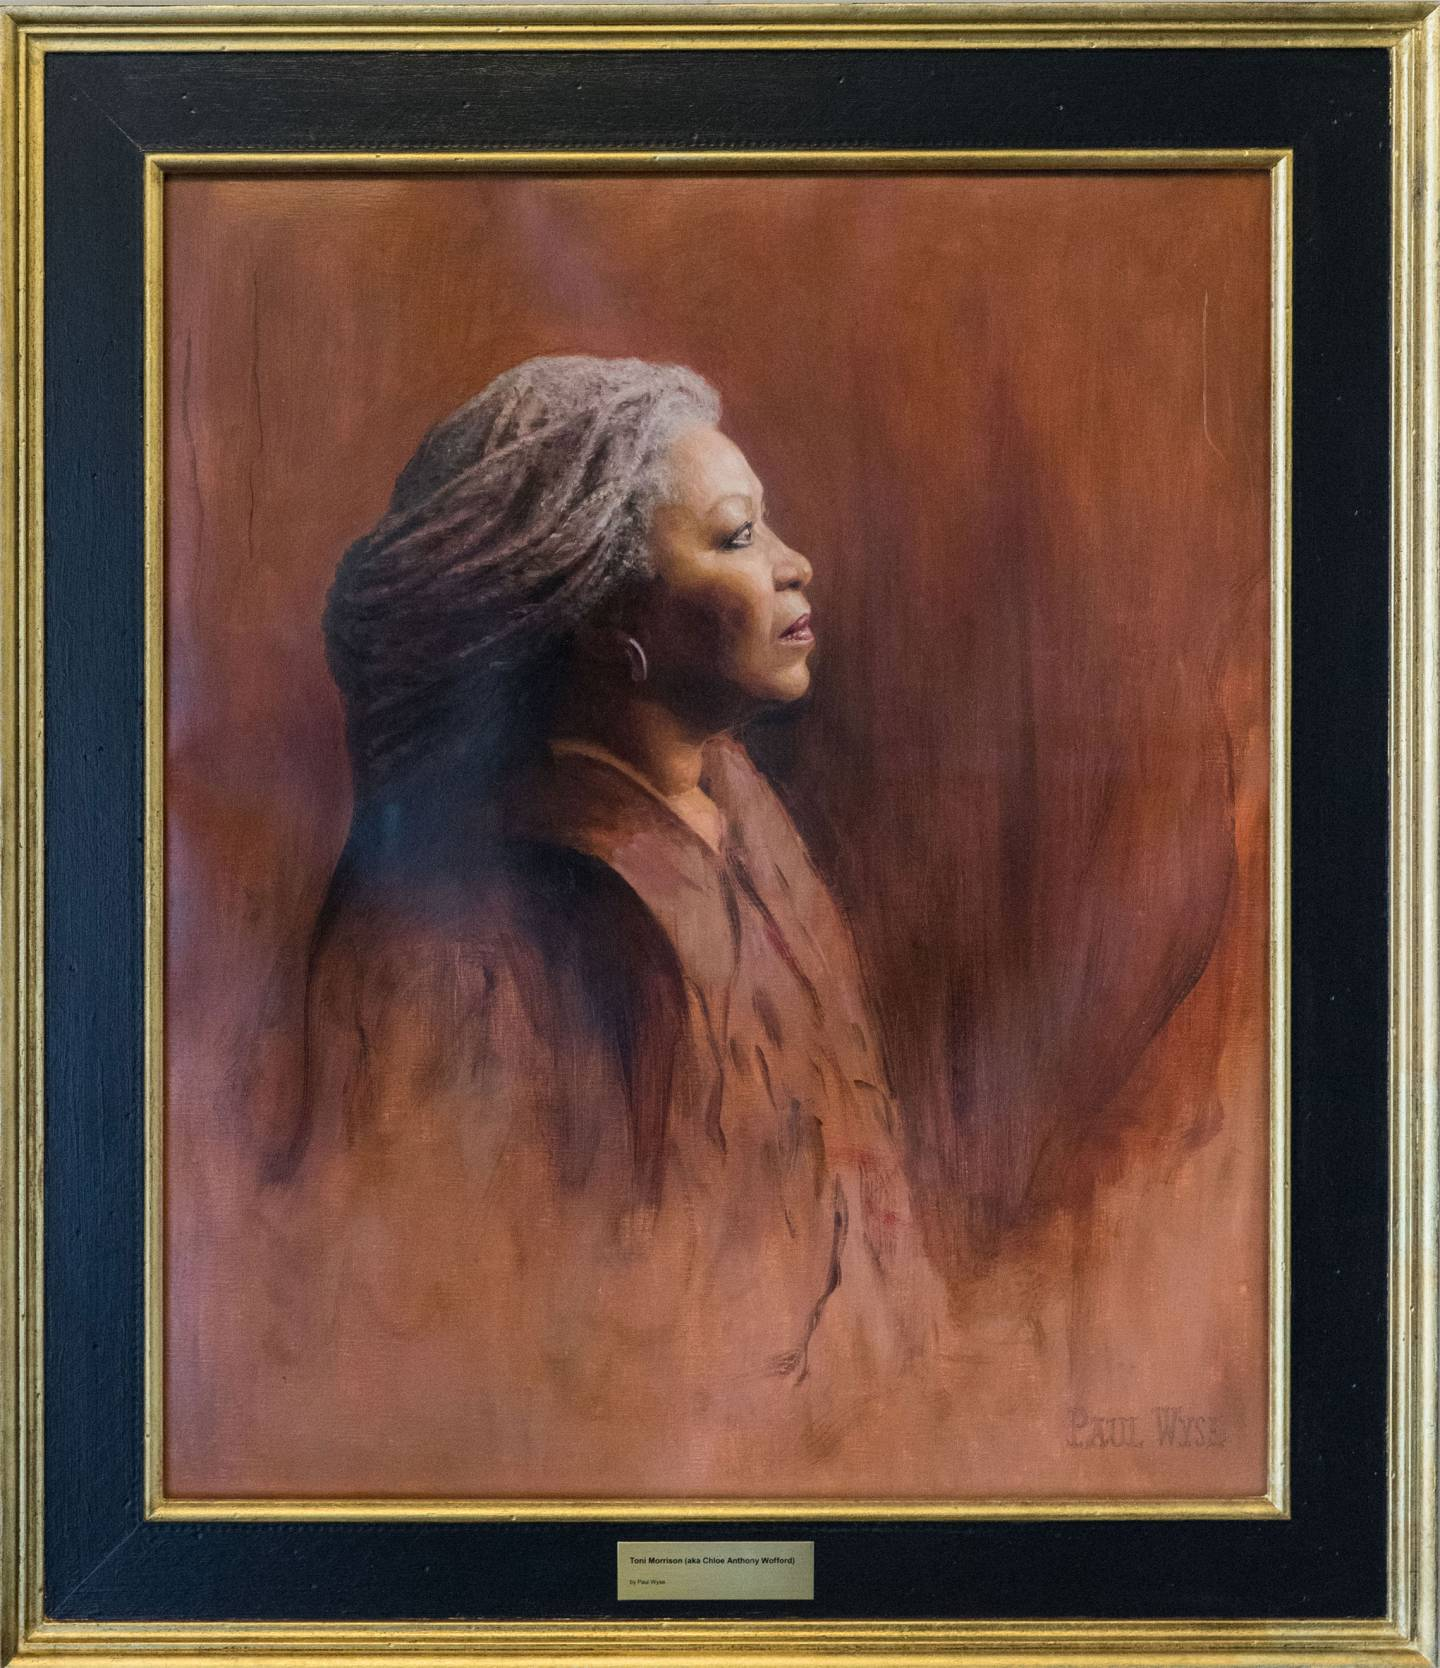 Framed portrait of Toni Morrison by Paul Wyse